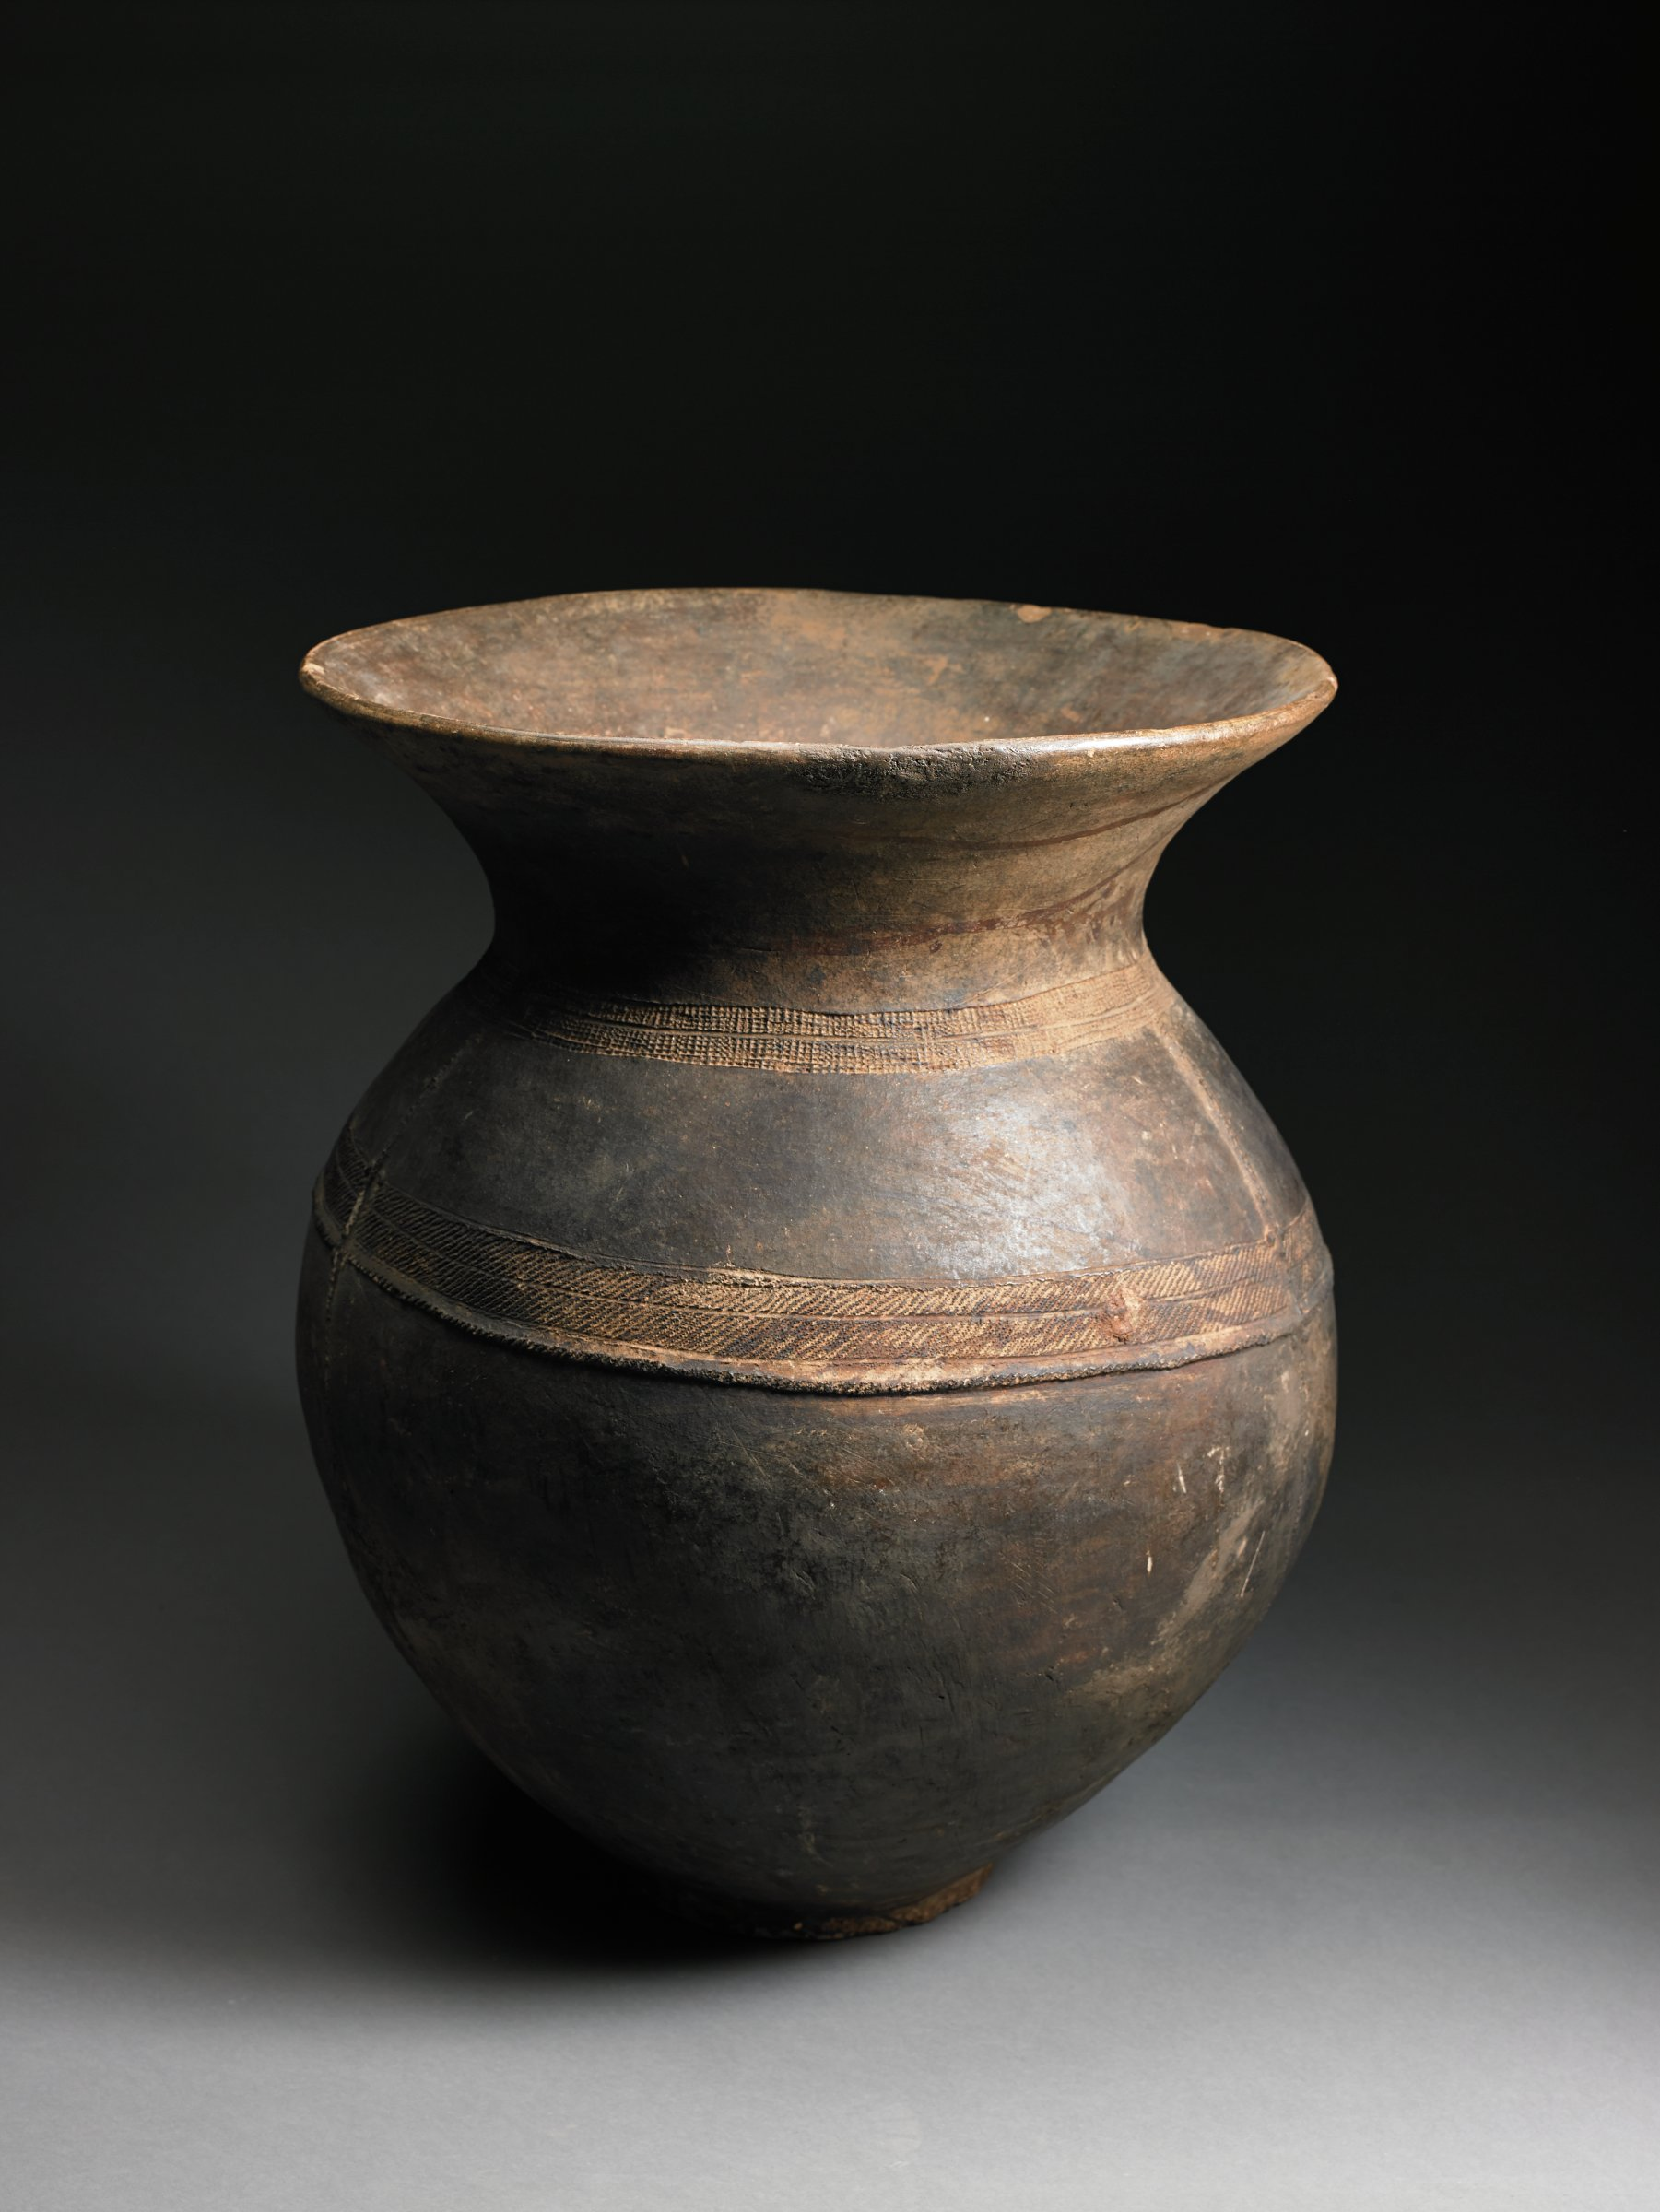 Brown, ovoid vessel indents deeply and tall neck flares outward. Shoulder and mid-section have band of roulette pattern; single vertical line bisects body of vessel with two raised bumps on either side of line.